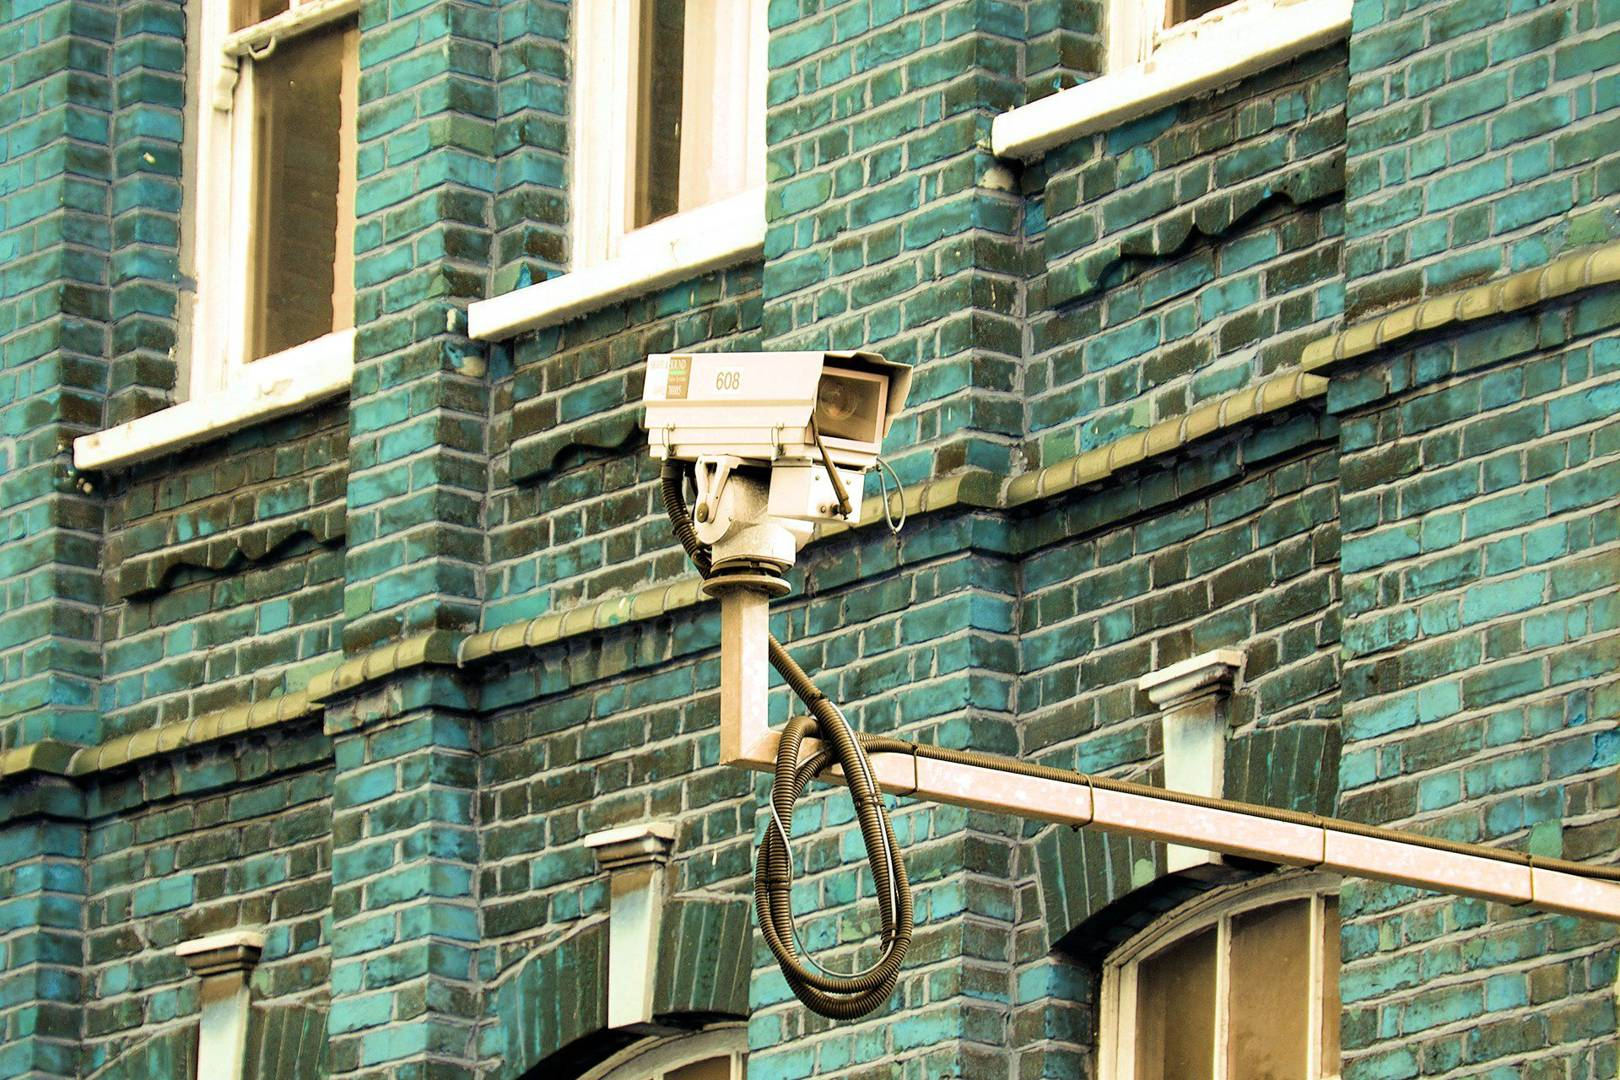 Inside the urgent battle to stop UK police using facial recognition